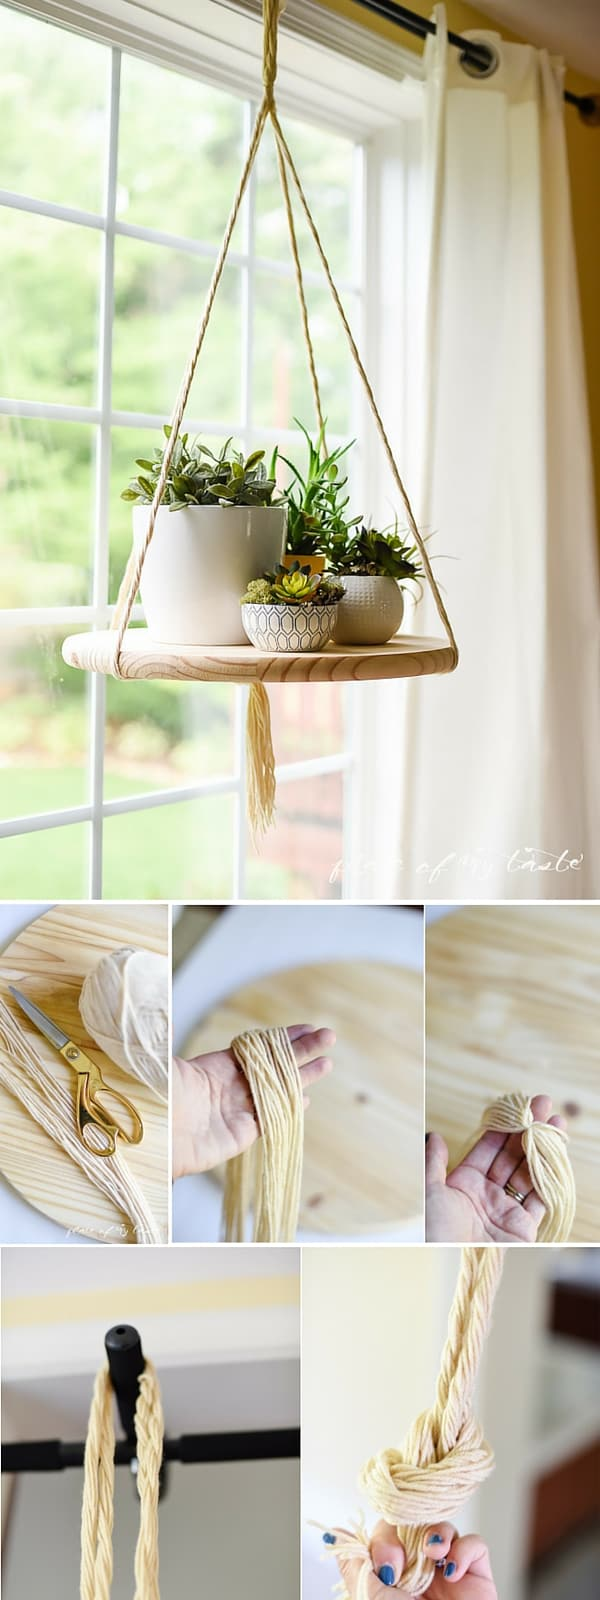 diy floating shelf to display your plants or other decor items. Black Bedroom Furniture Sets. Home Design Ideas